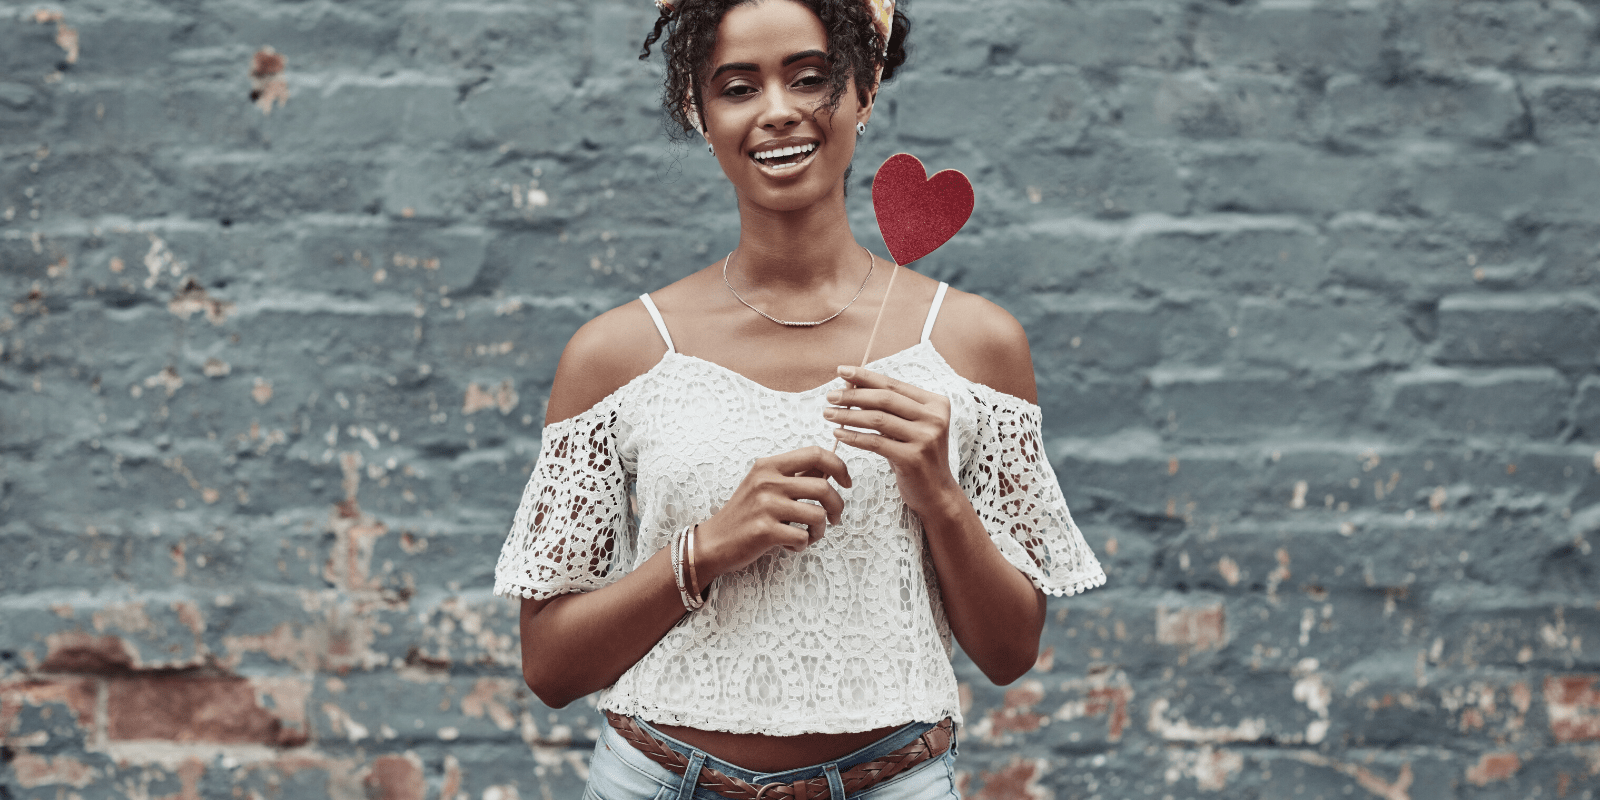 woman holding red heart showing self love and self care